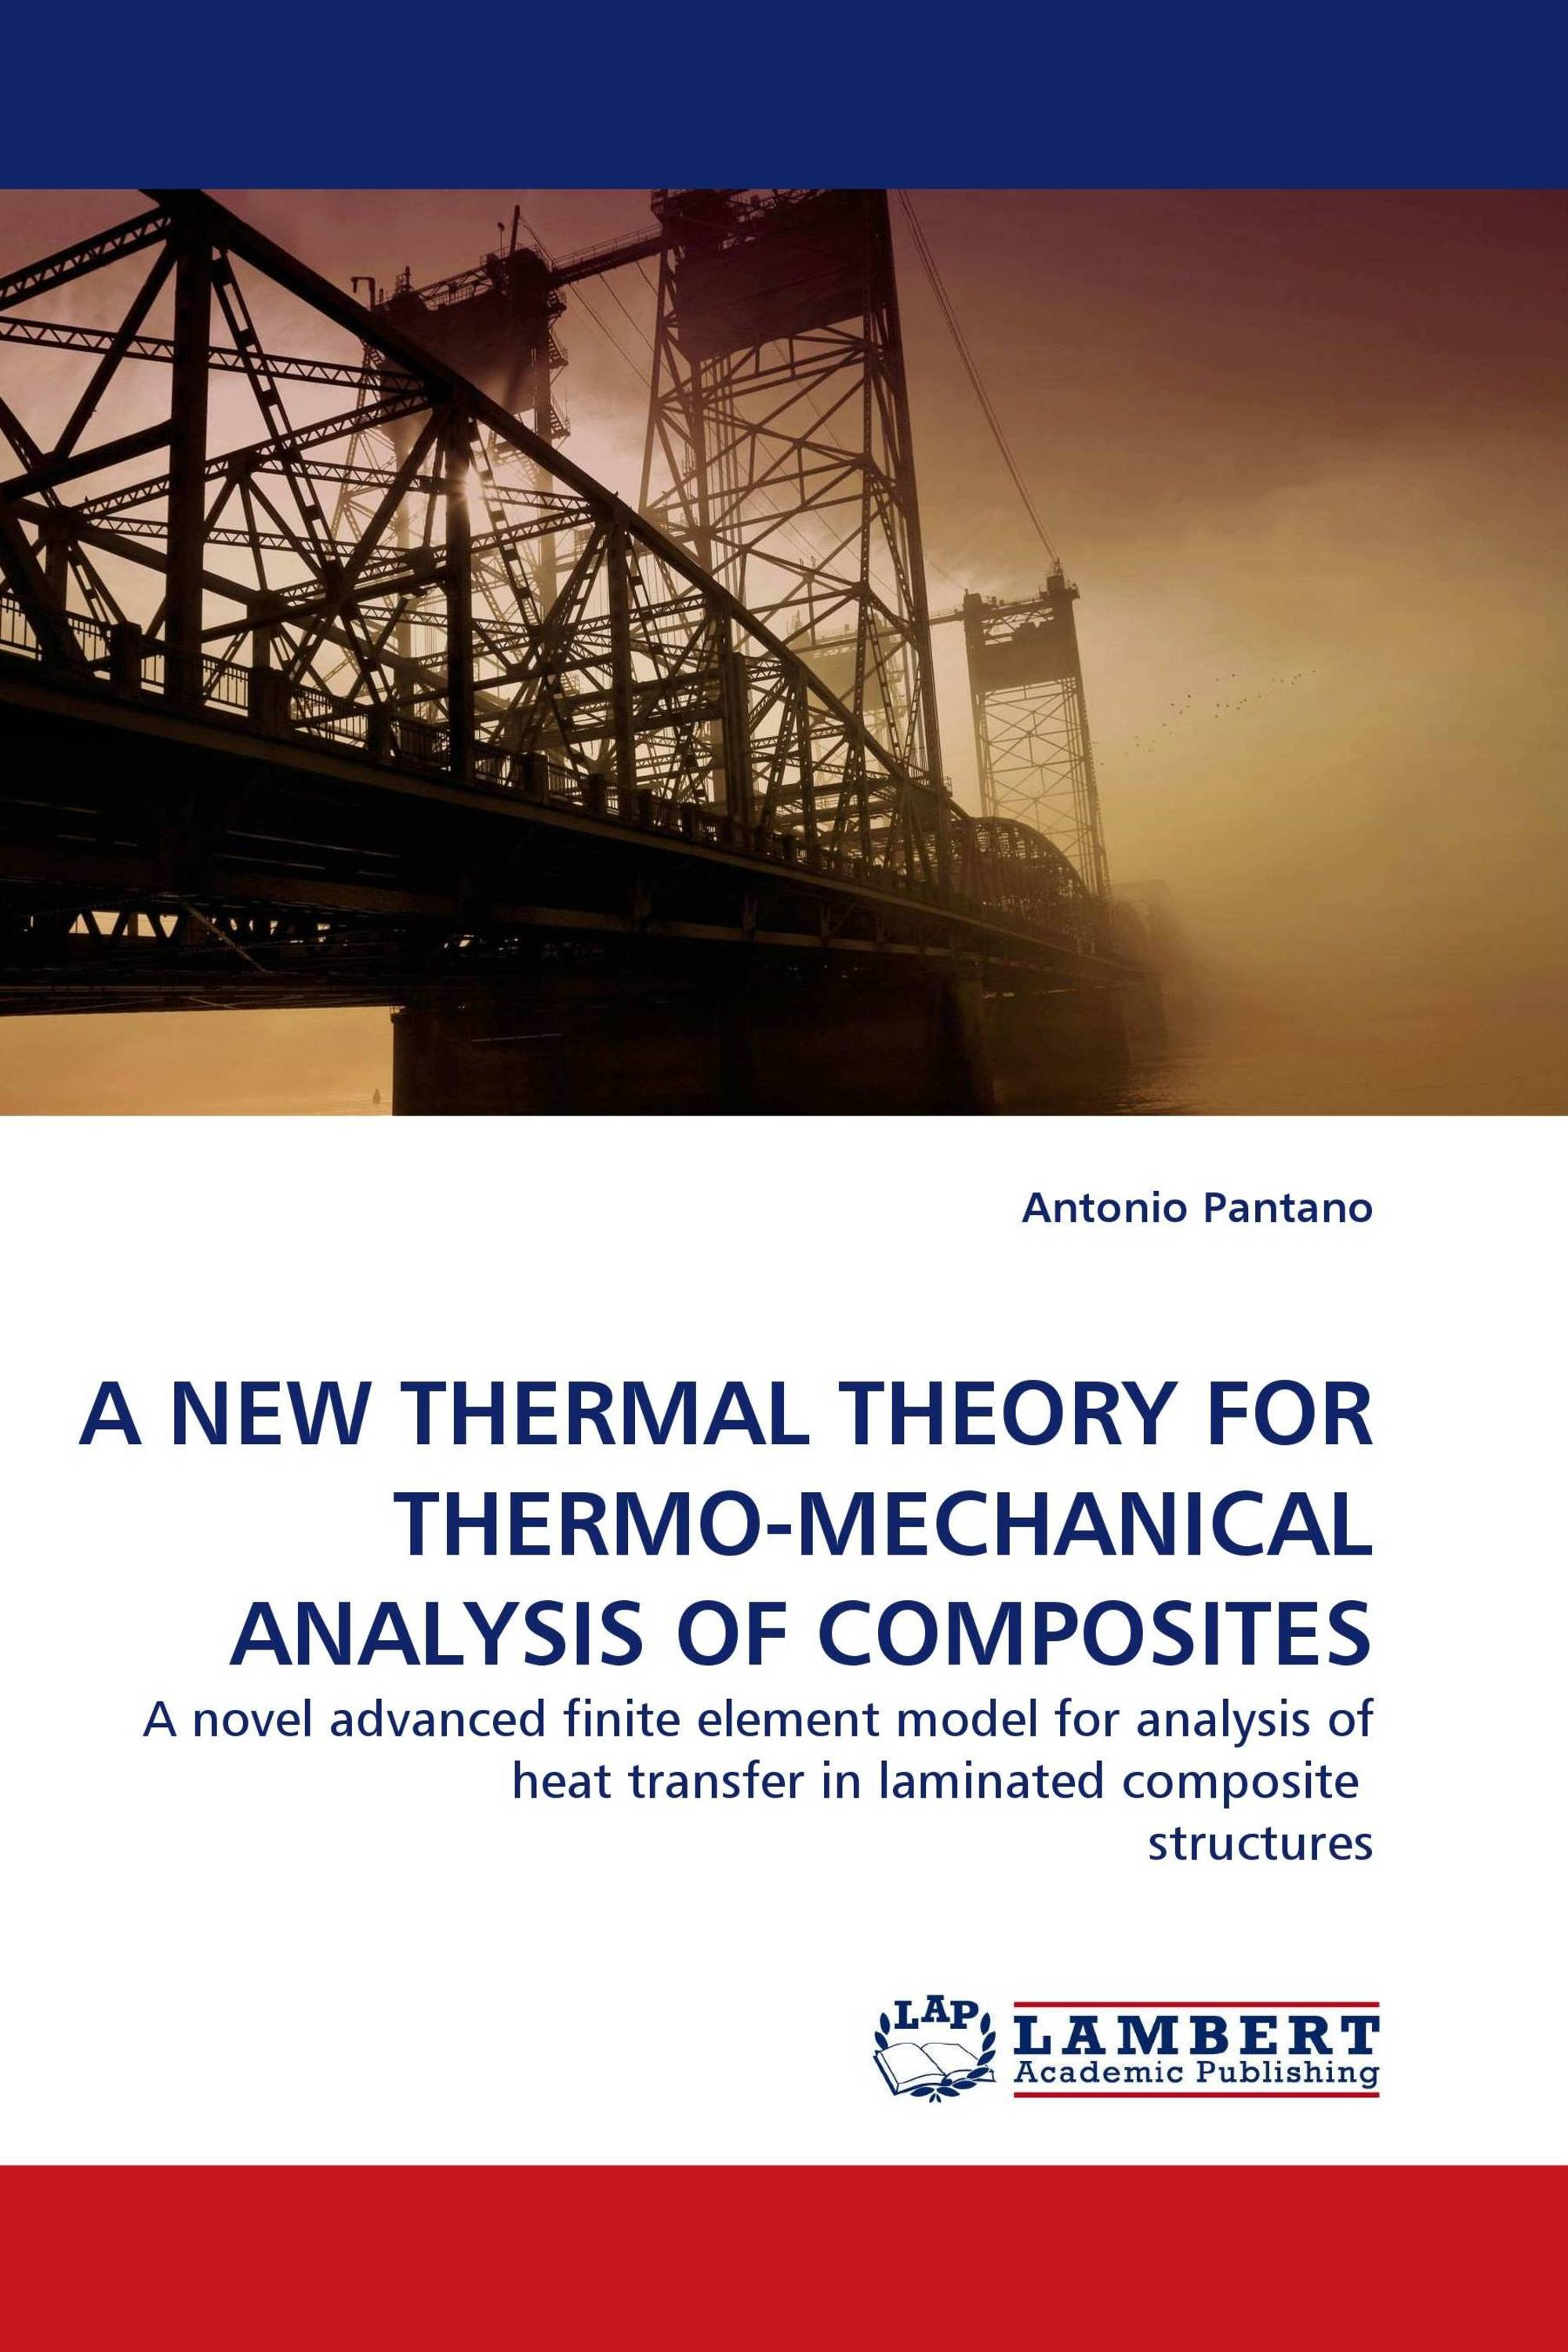 A NEW THERMAL THEORY FOR THERMO-MECHANICAL ANALYSIS OF COMPOSITES